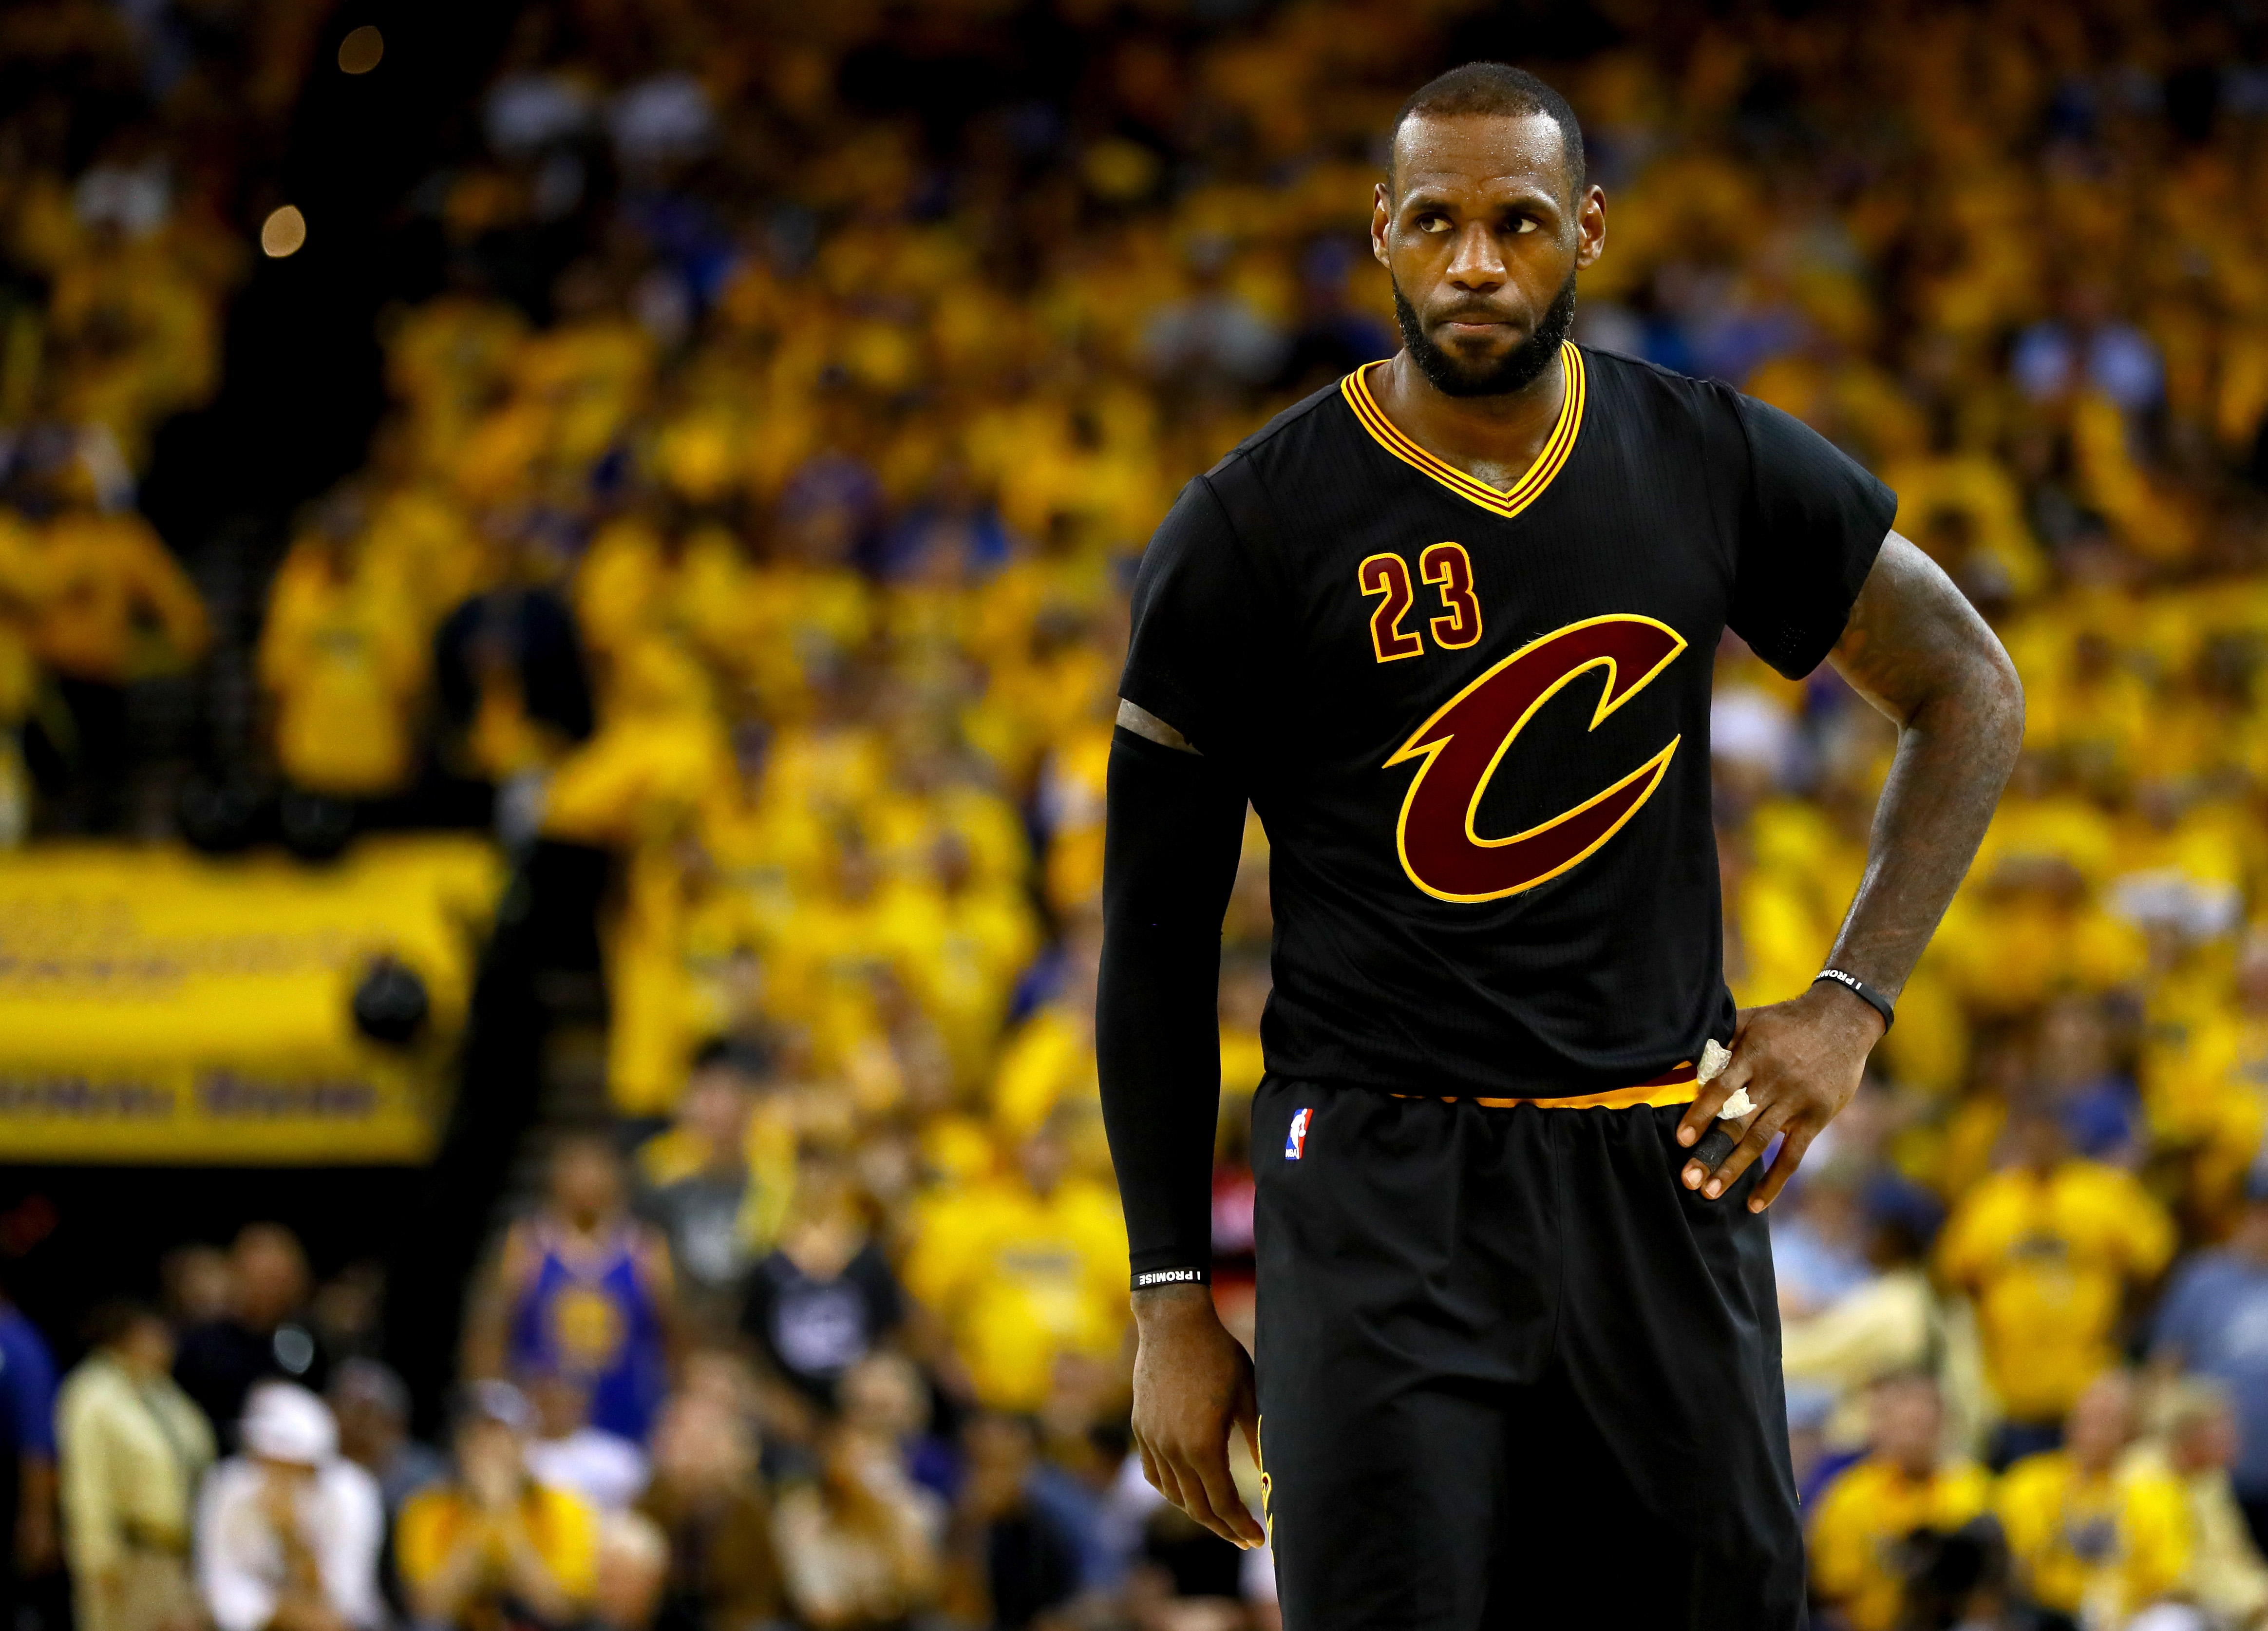 a36bc82b5b27 How Adidas low-balled LeBron and lost him to Nike - NZ Herald